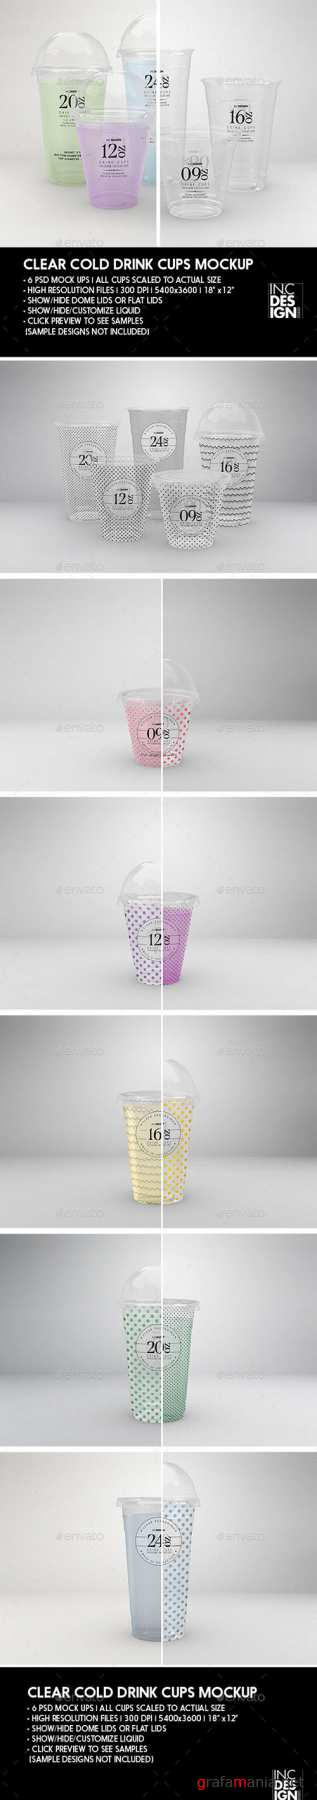 Clear Cold Drink Cups Packaging Mock Up 21324054